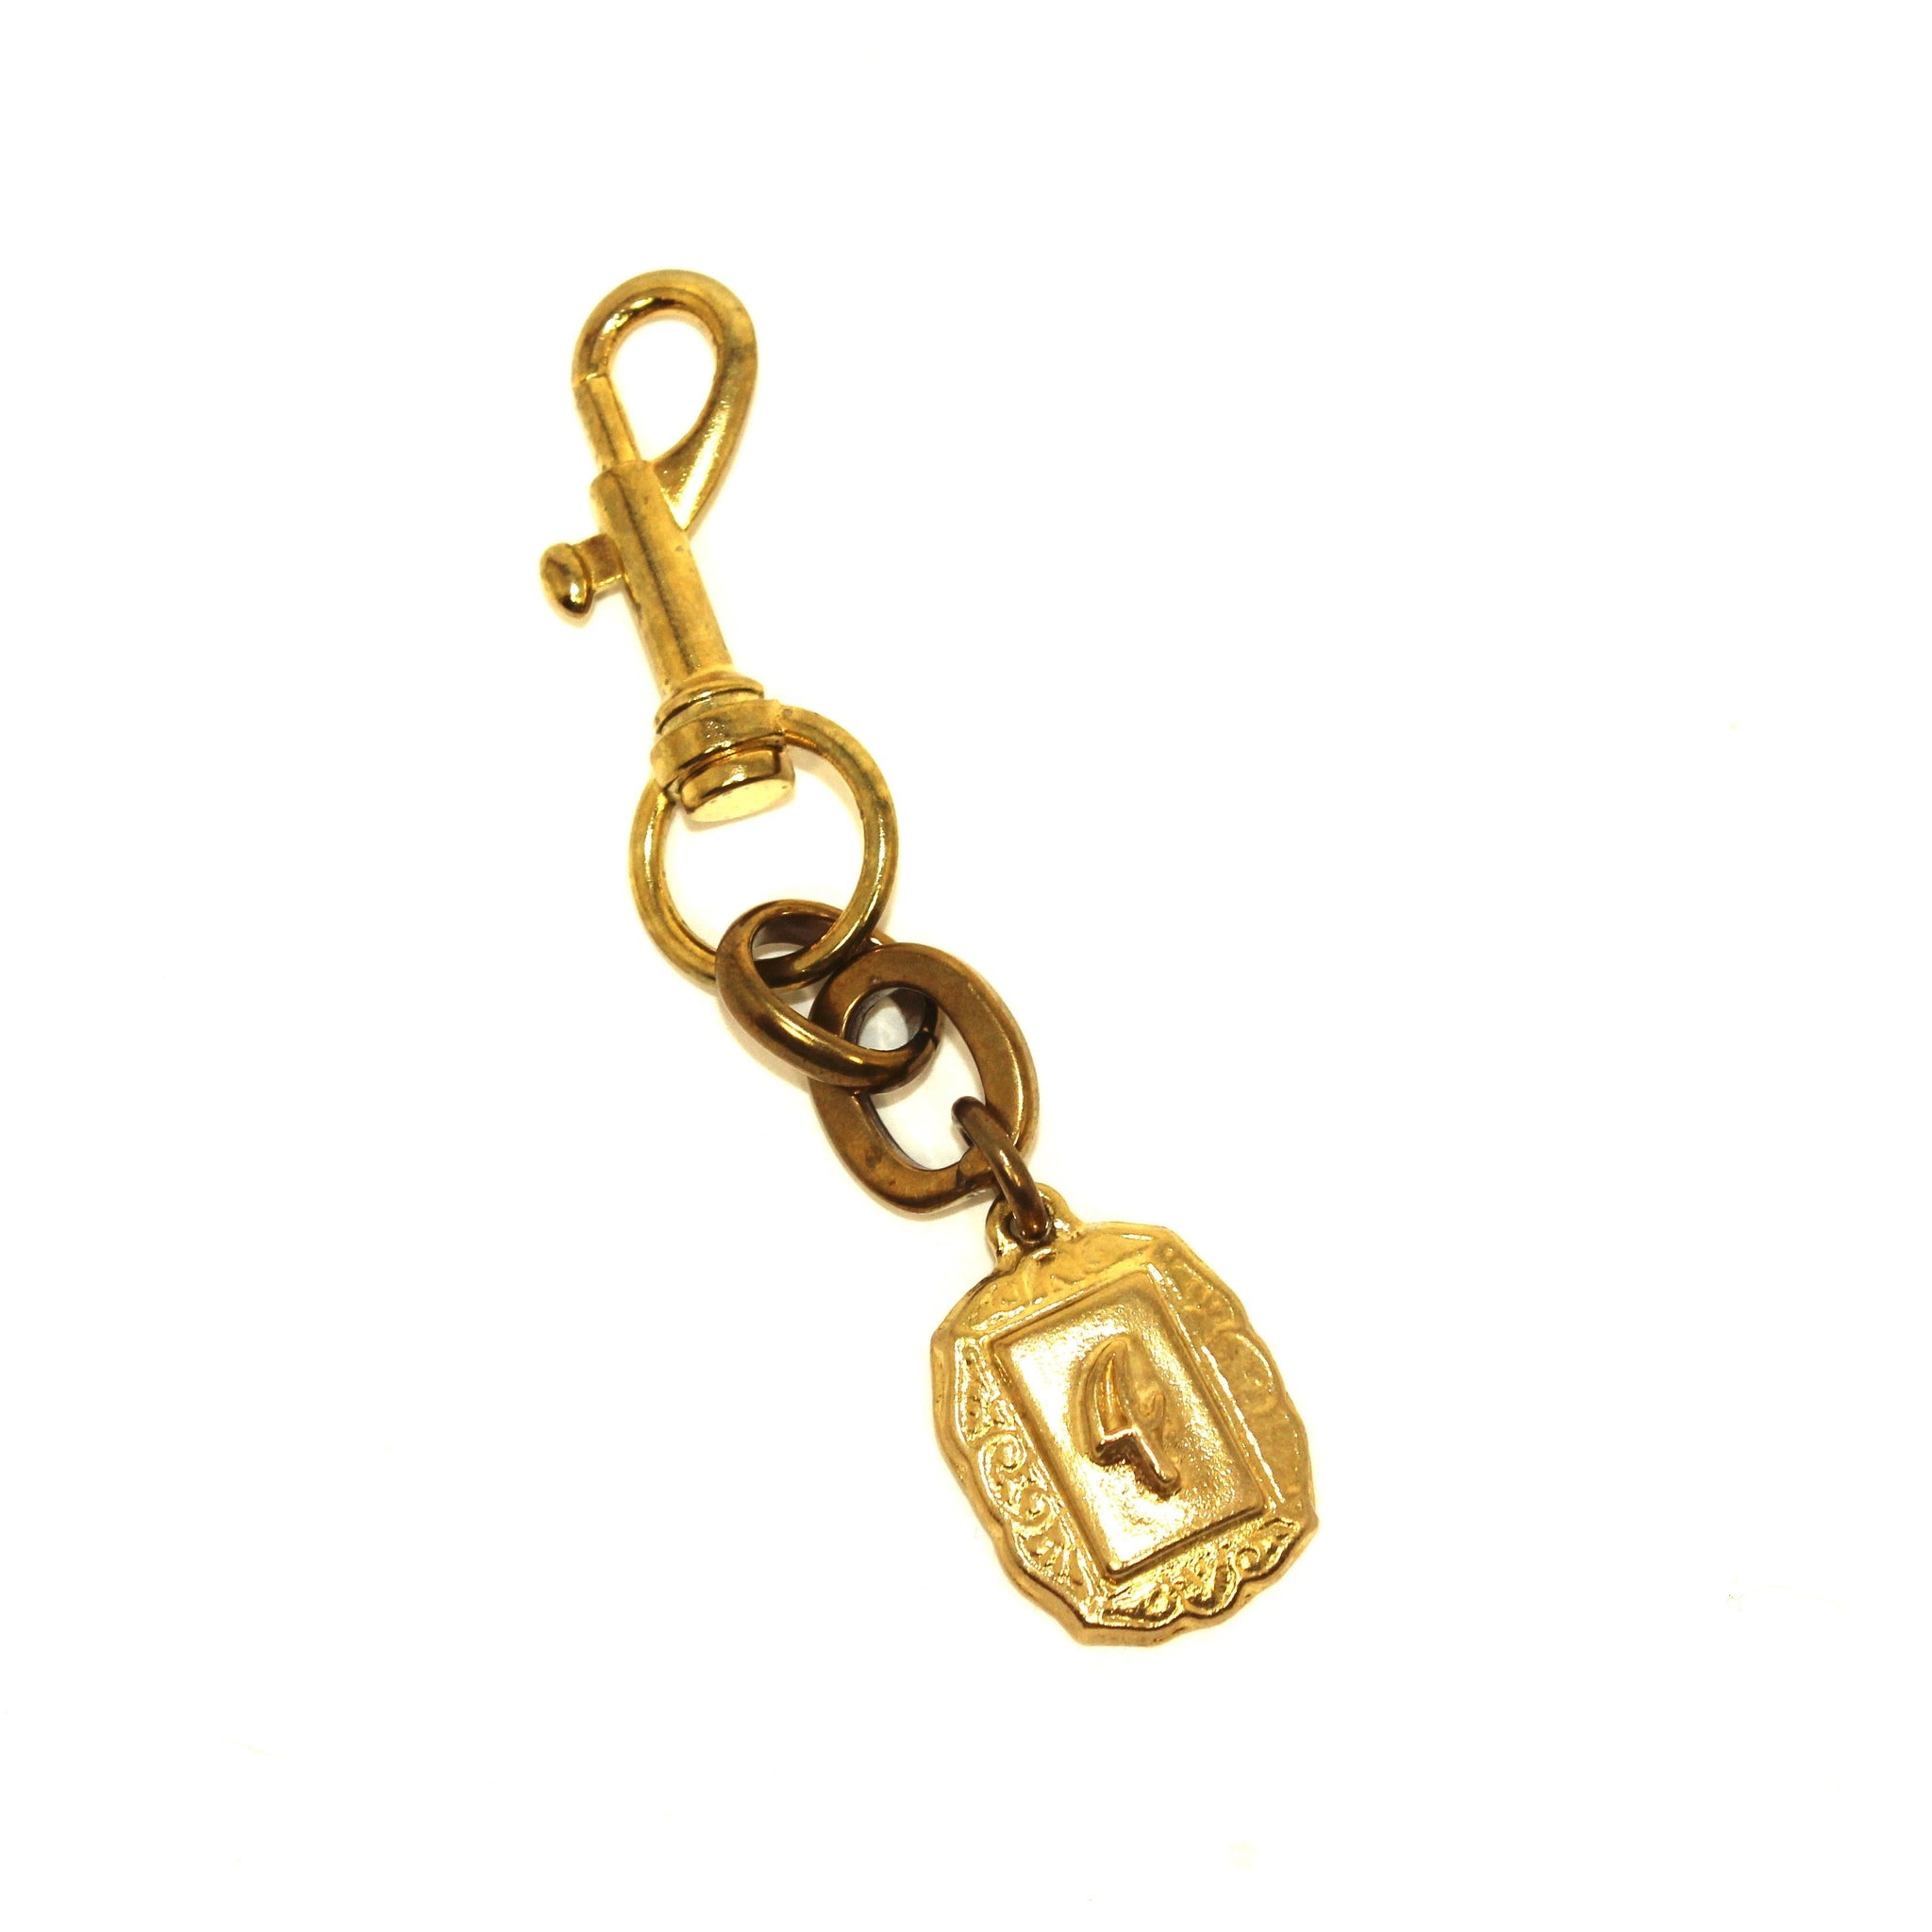 Lulu Frost Gold Number 4 Keychain - New Donated From The Designer - The Fashion Foundation